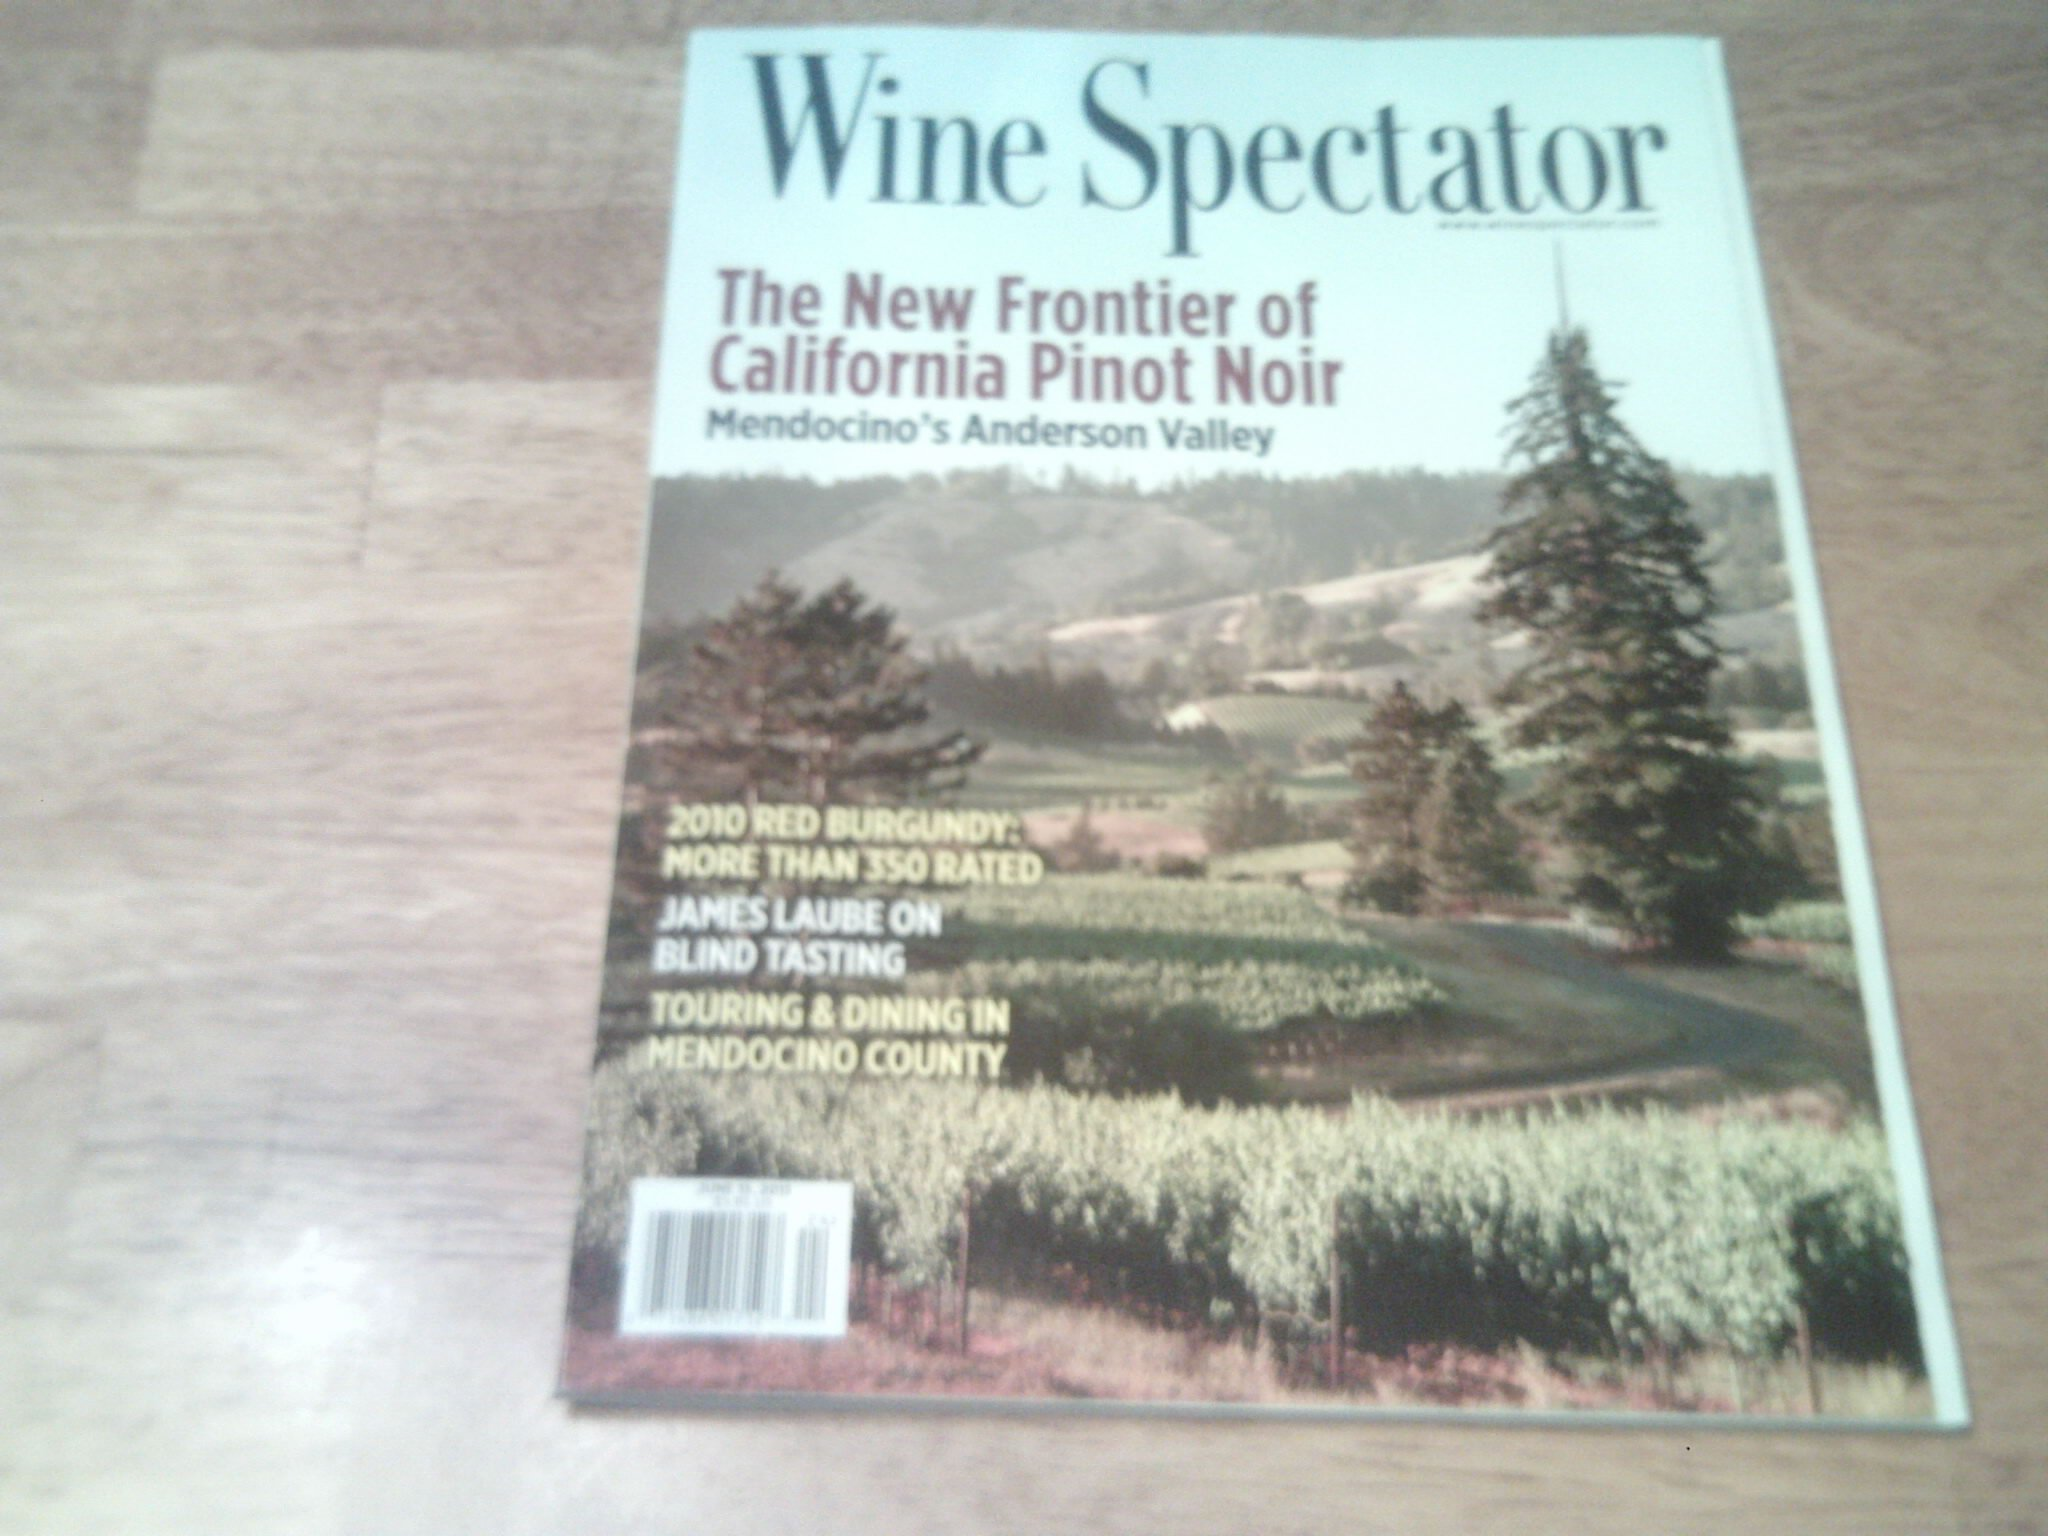 Download Wine Spectator 2013 June 15 - The New Frontier of California Point Noir. Mendocin,s Anderson Valley pdf